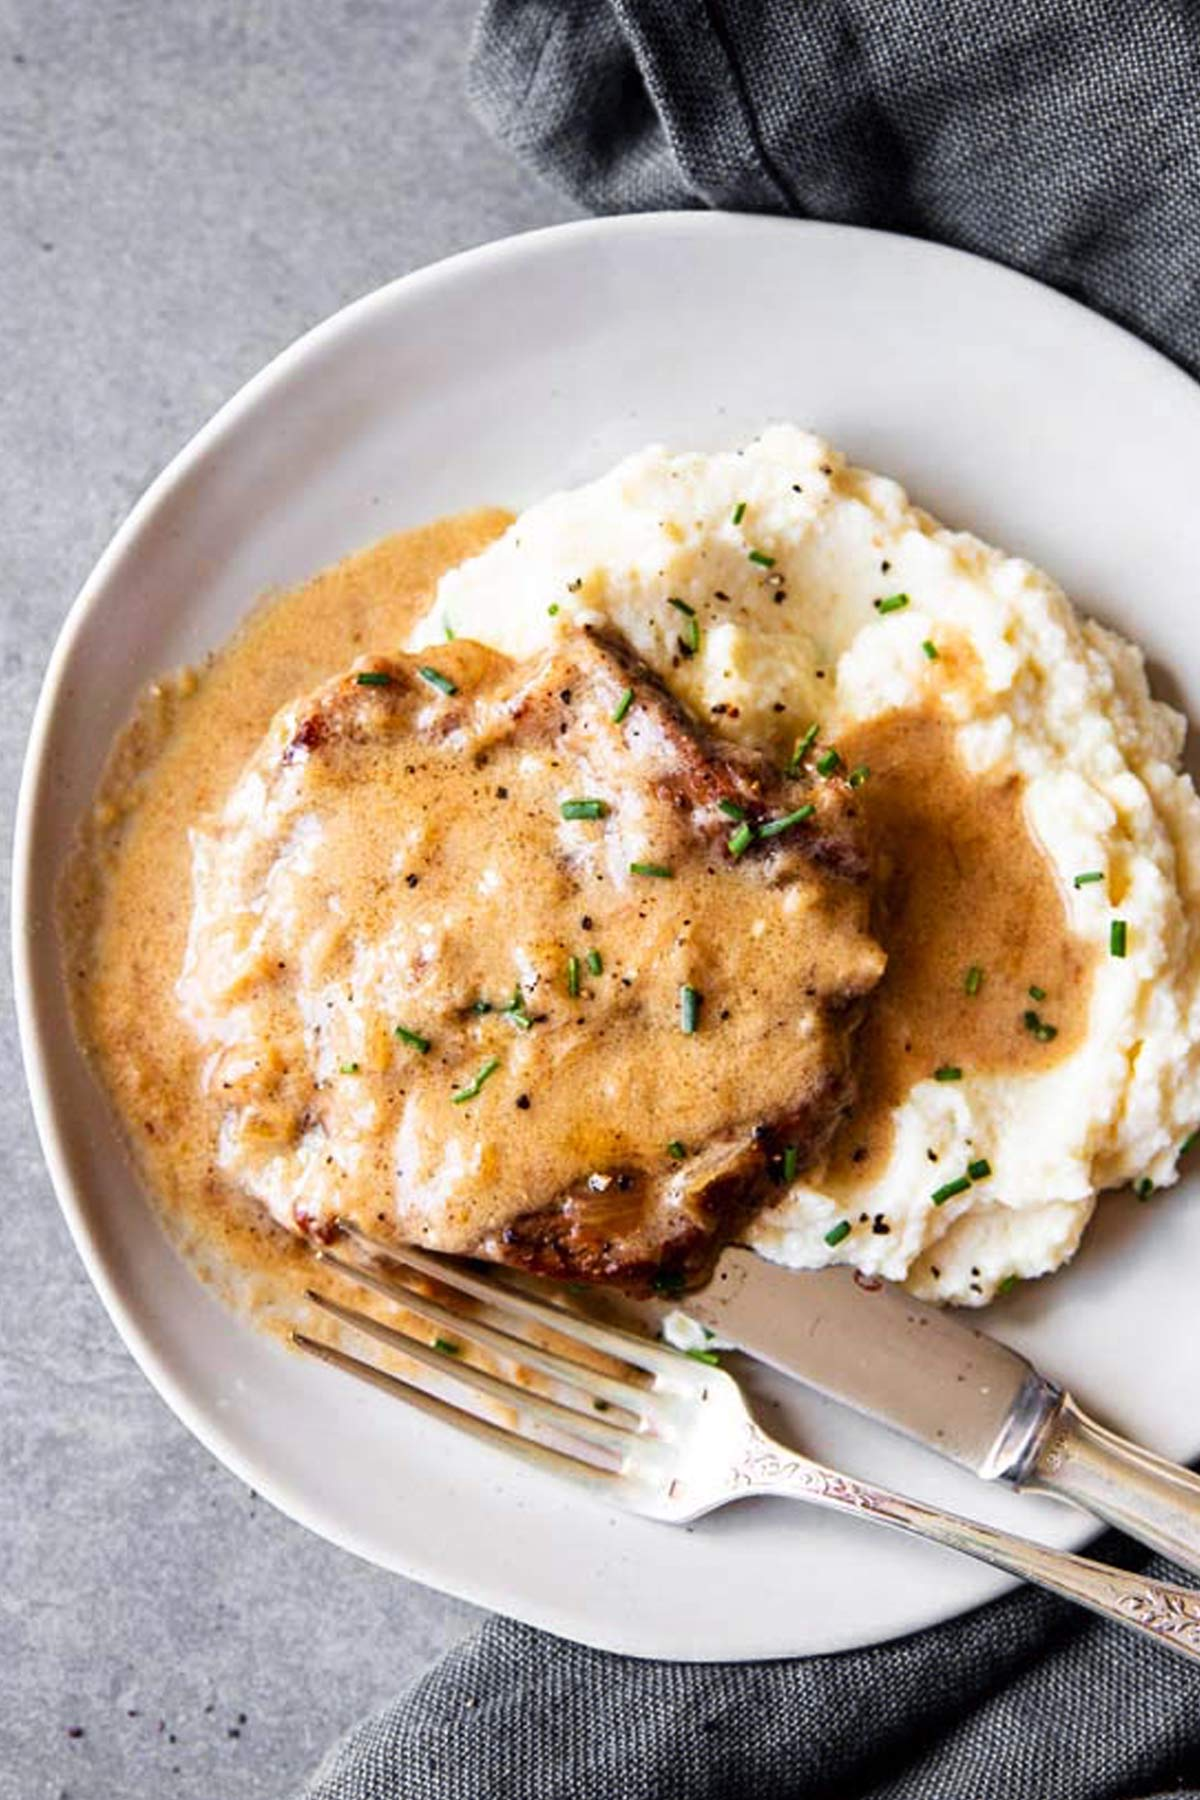 instant pot sour cream pork chop on a plate with mashed cauliflower